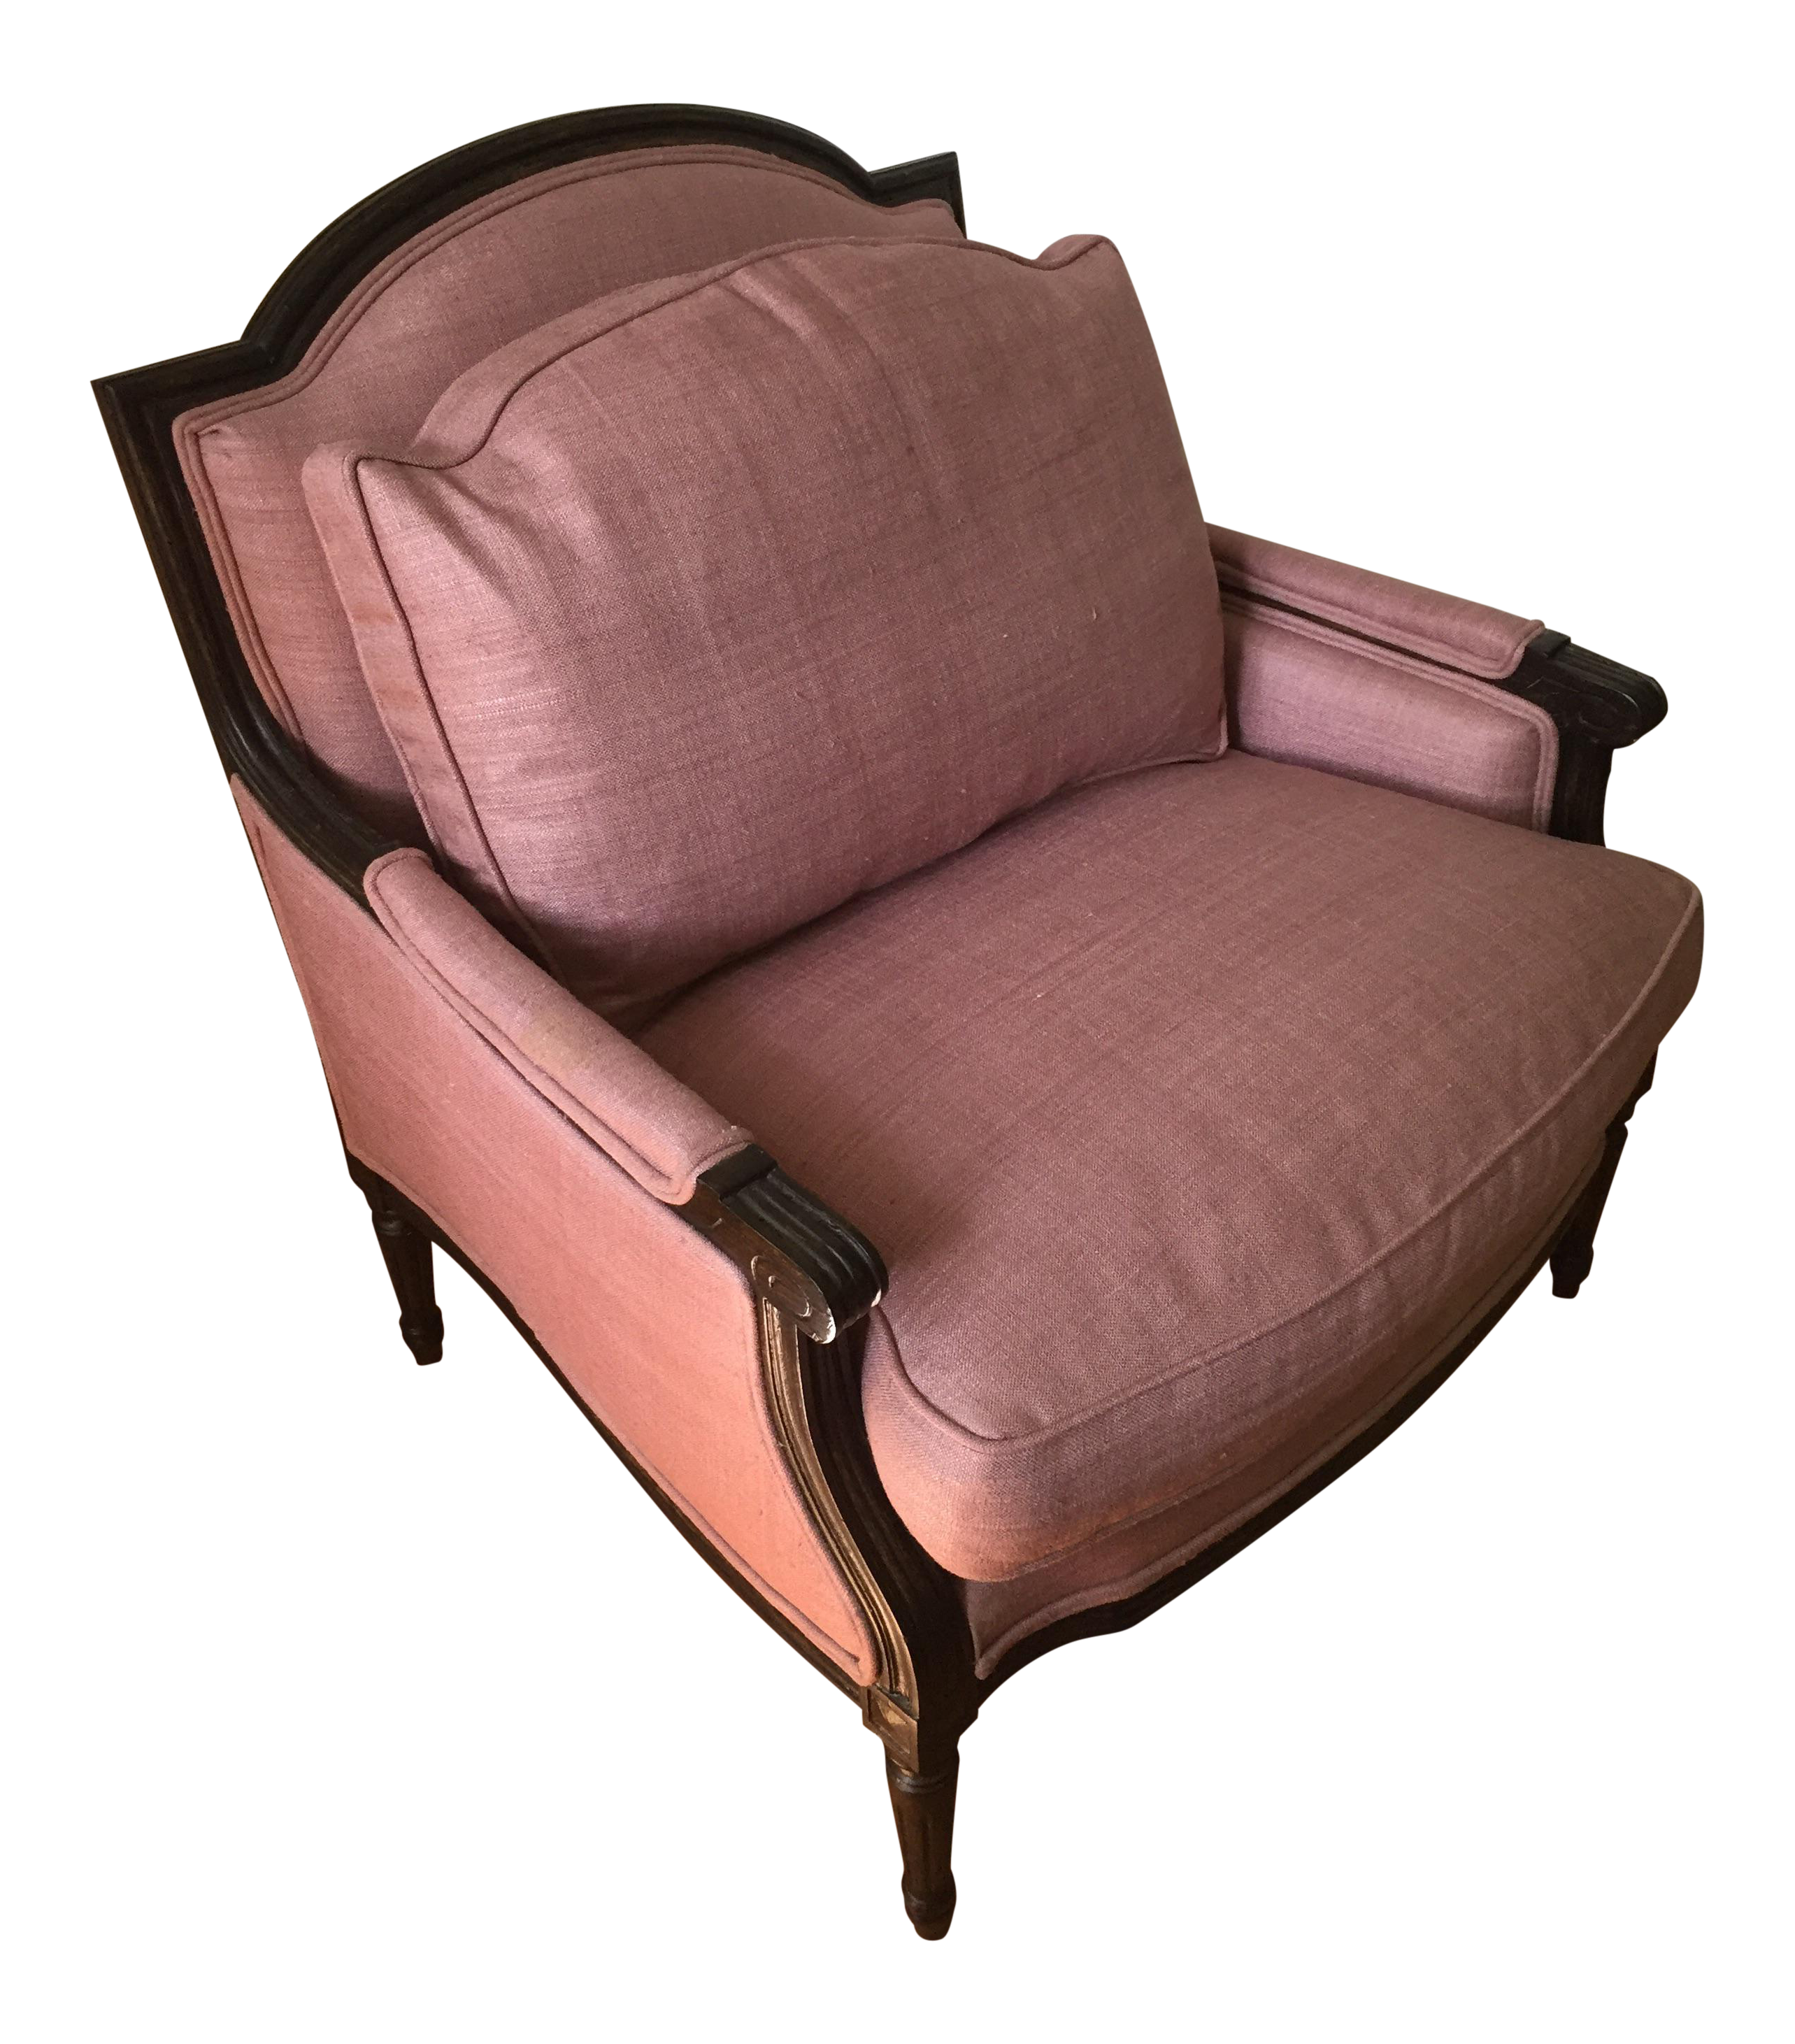 Light pink accent chair 187 home design 2017 - Heirloom By Century Furniture Louis Xvi Bergere Chair